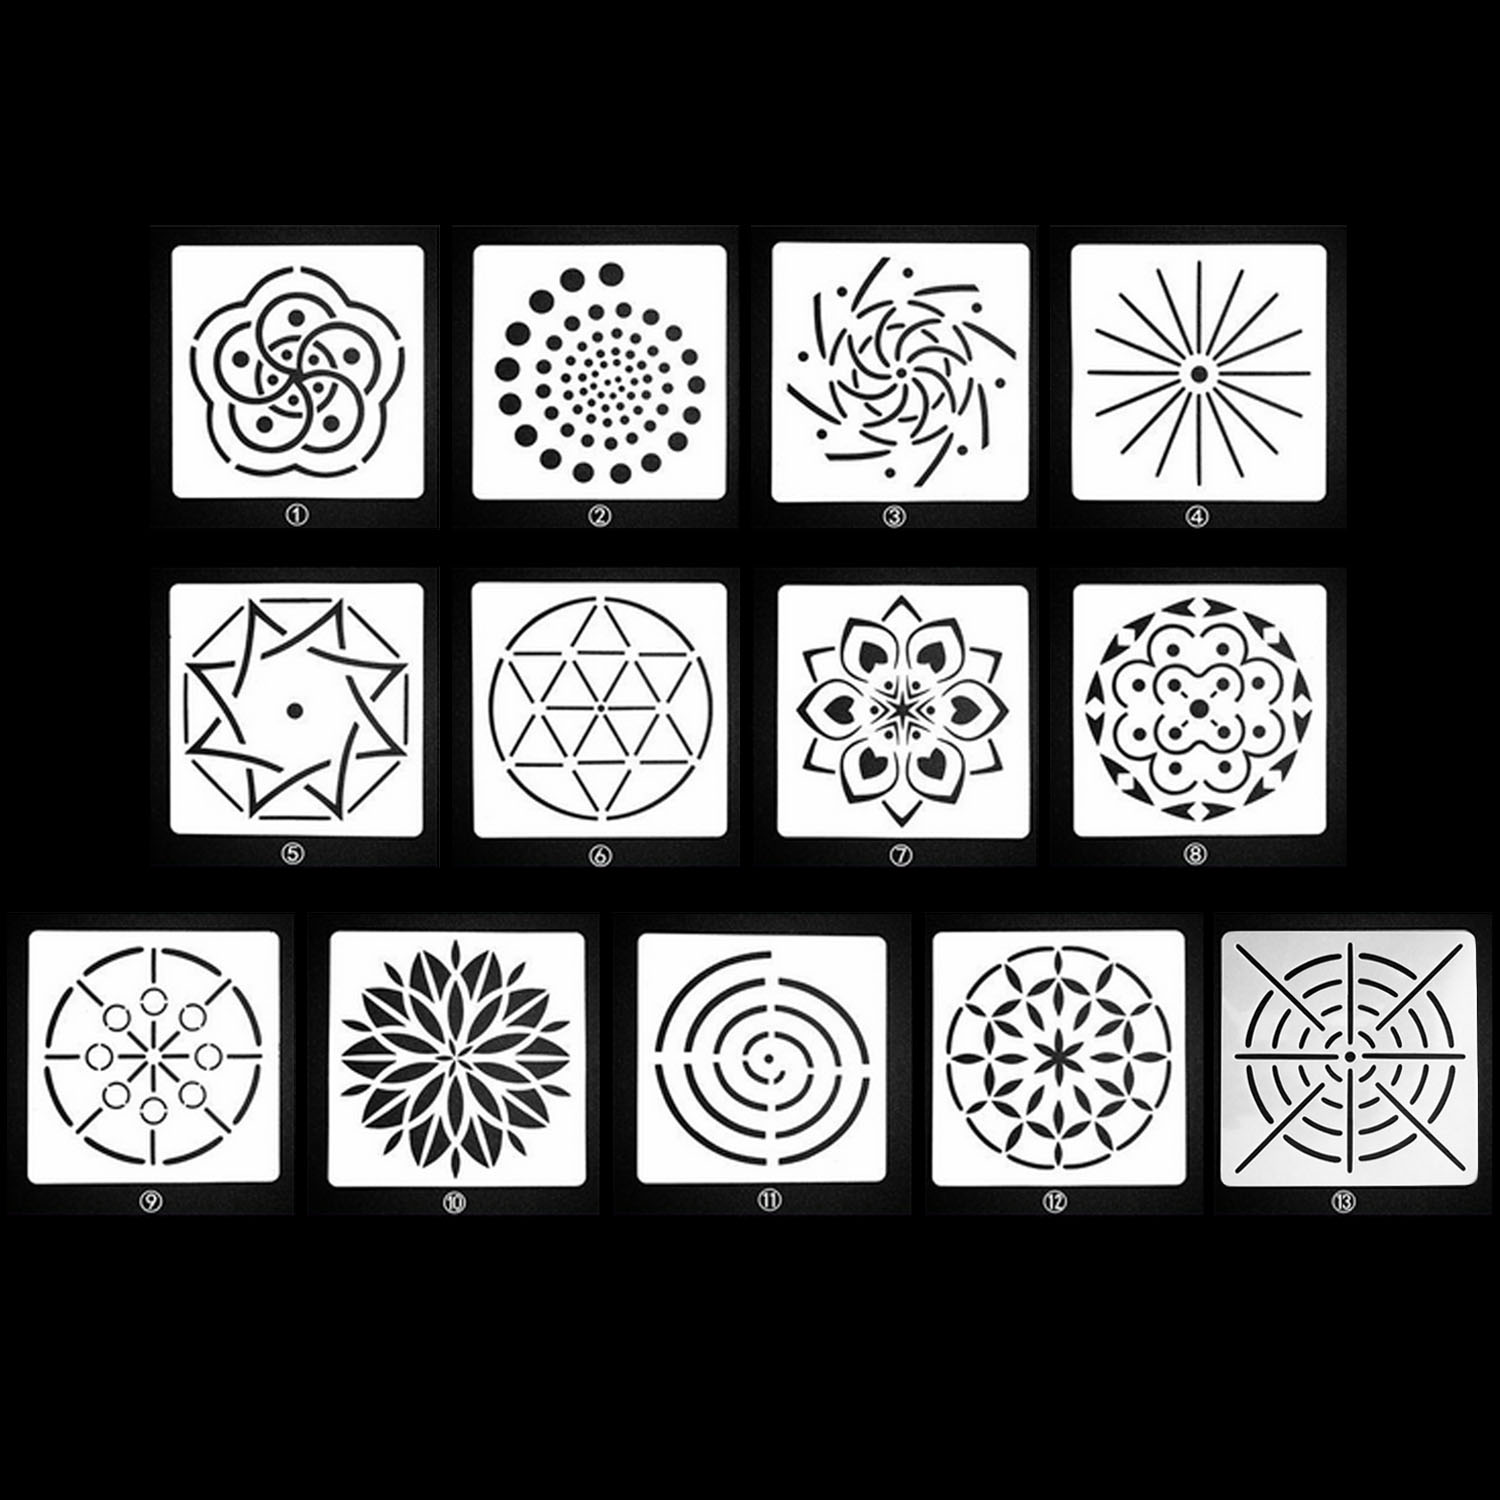 13PCS Assorted Pattern Mandala Dotting Painting Stencils Templates Tools For DIY Craft Furniture Wood Canvas Rocks Fabrics Art